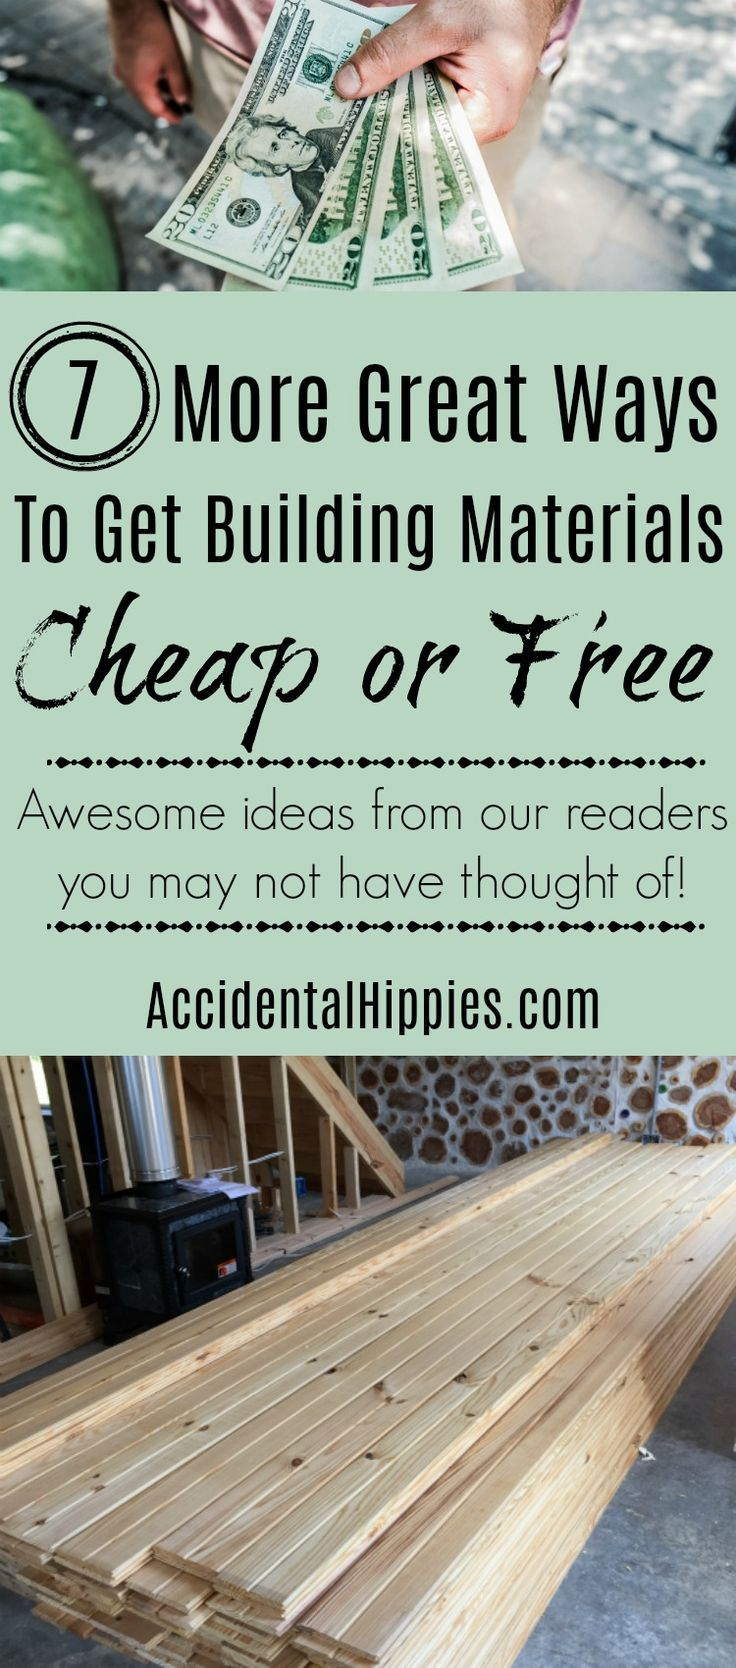 7 more awesome ways to save money on building supplies